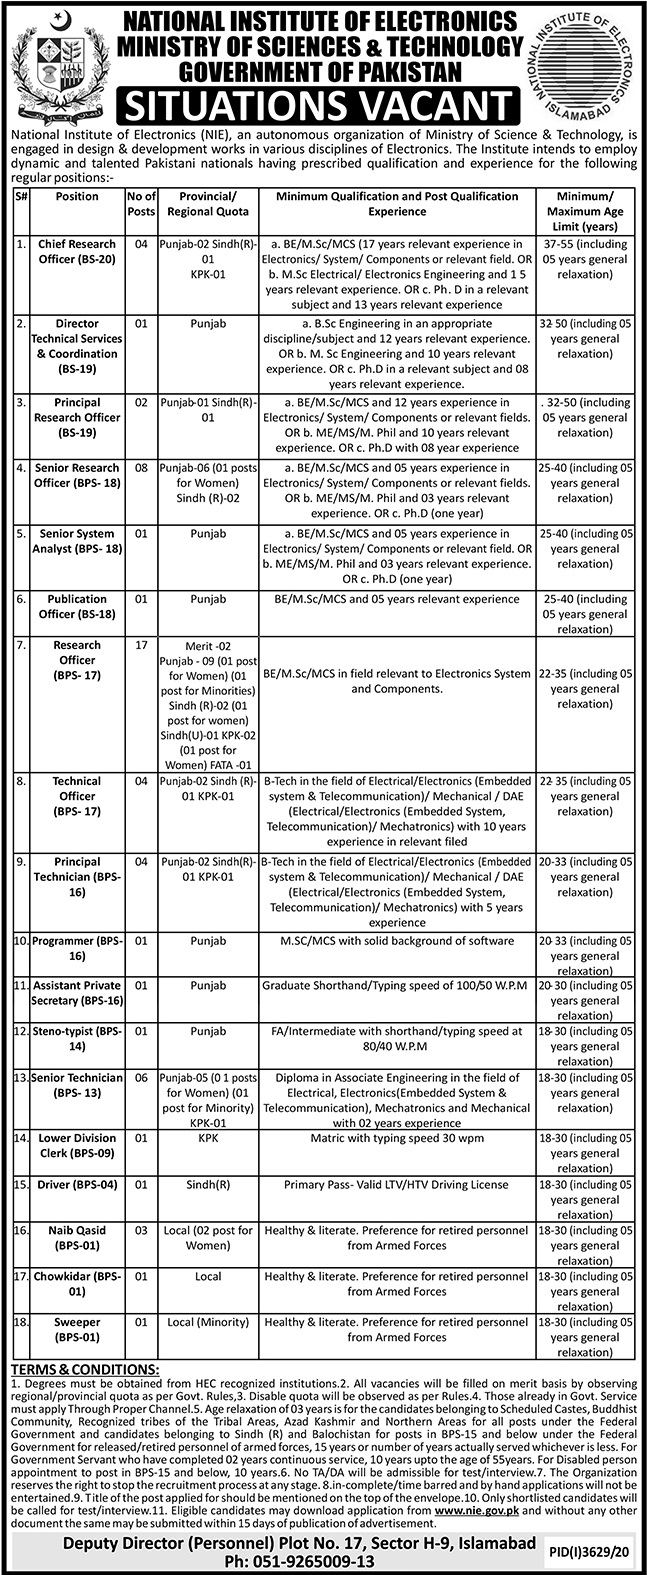 National Institute of Electronics Jobs 2021 in Islamabad